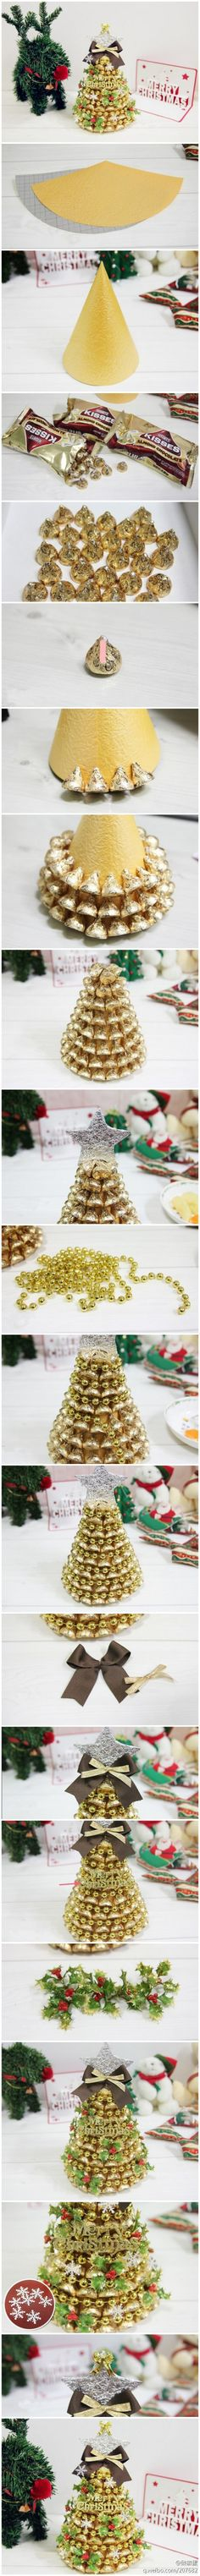 DIY Gold Kisses Christmas Tree! omg if you get a christmas present from me better belive its gonna be this! hahah